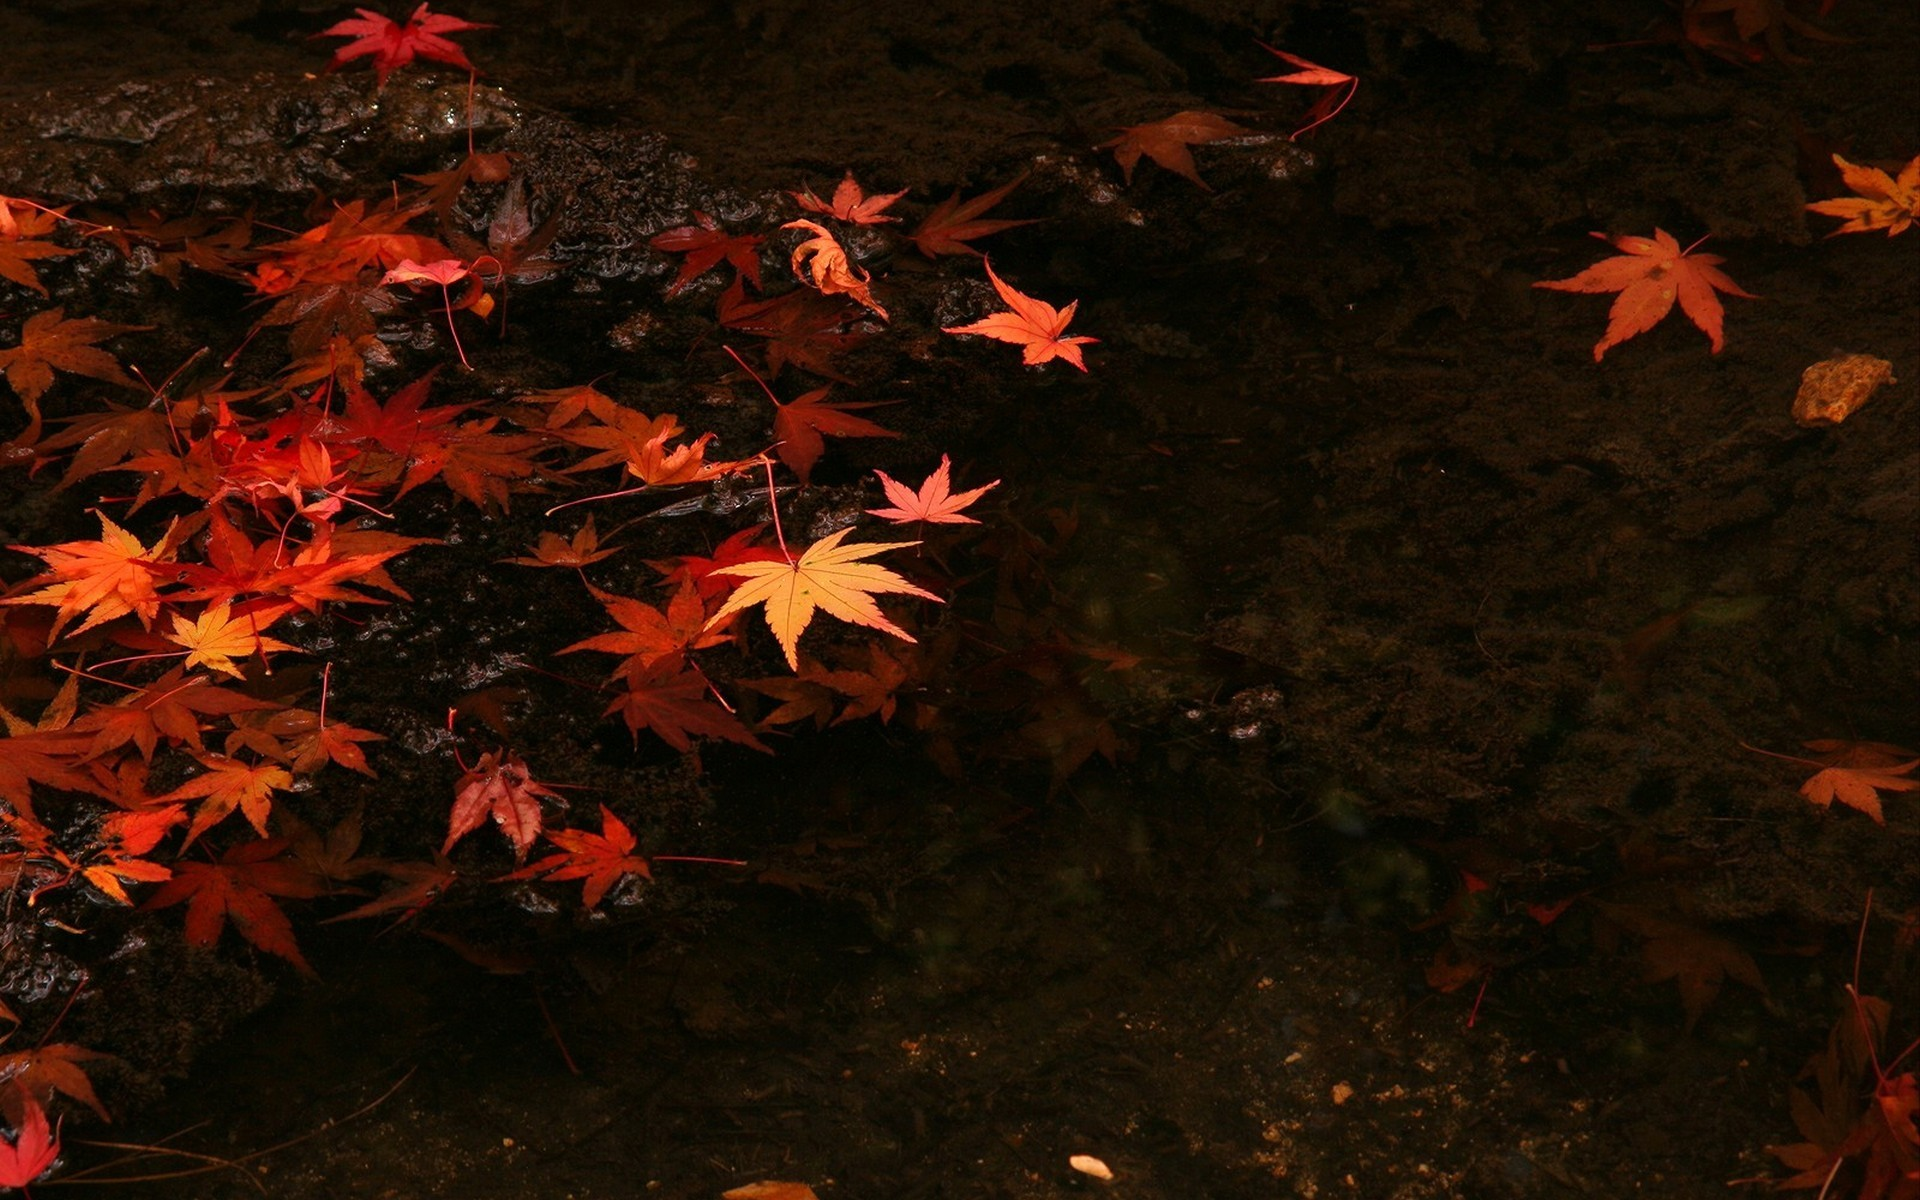 Dark Fall Iphone Wallpaper Water Japan Nature Leaves Wallpaper Allwallpaper In